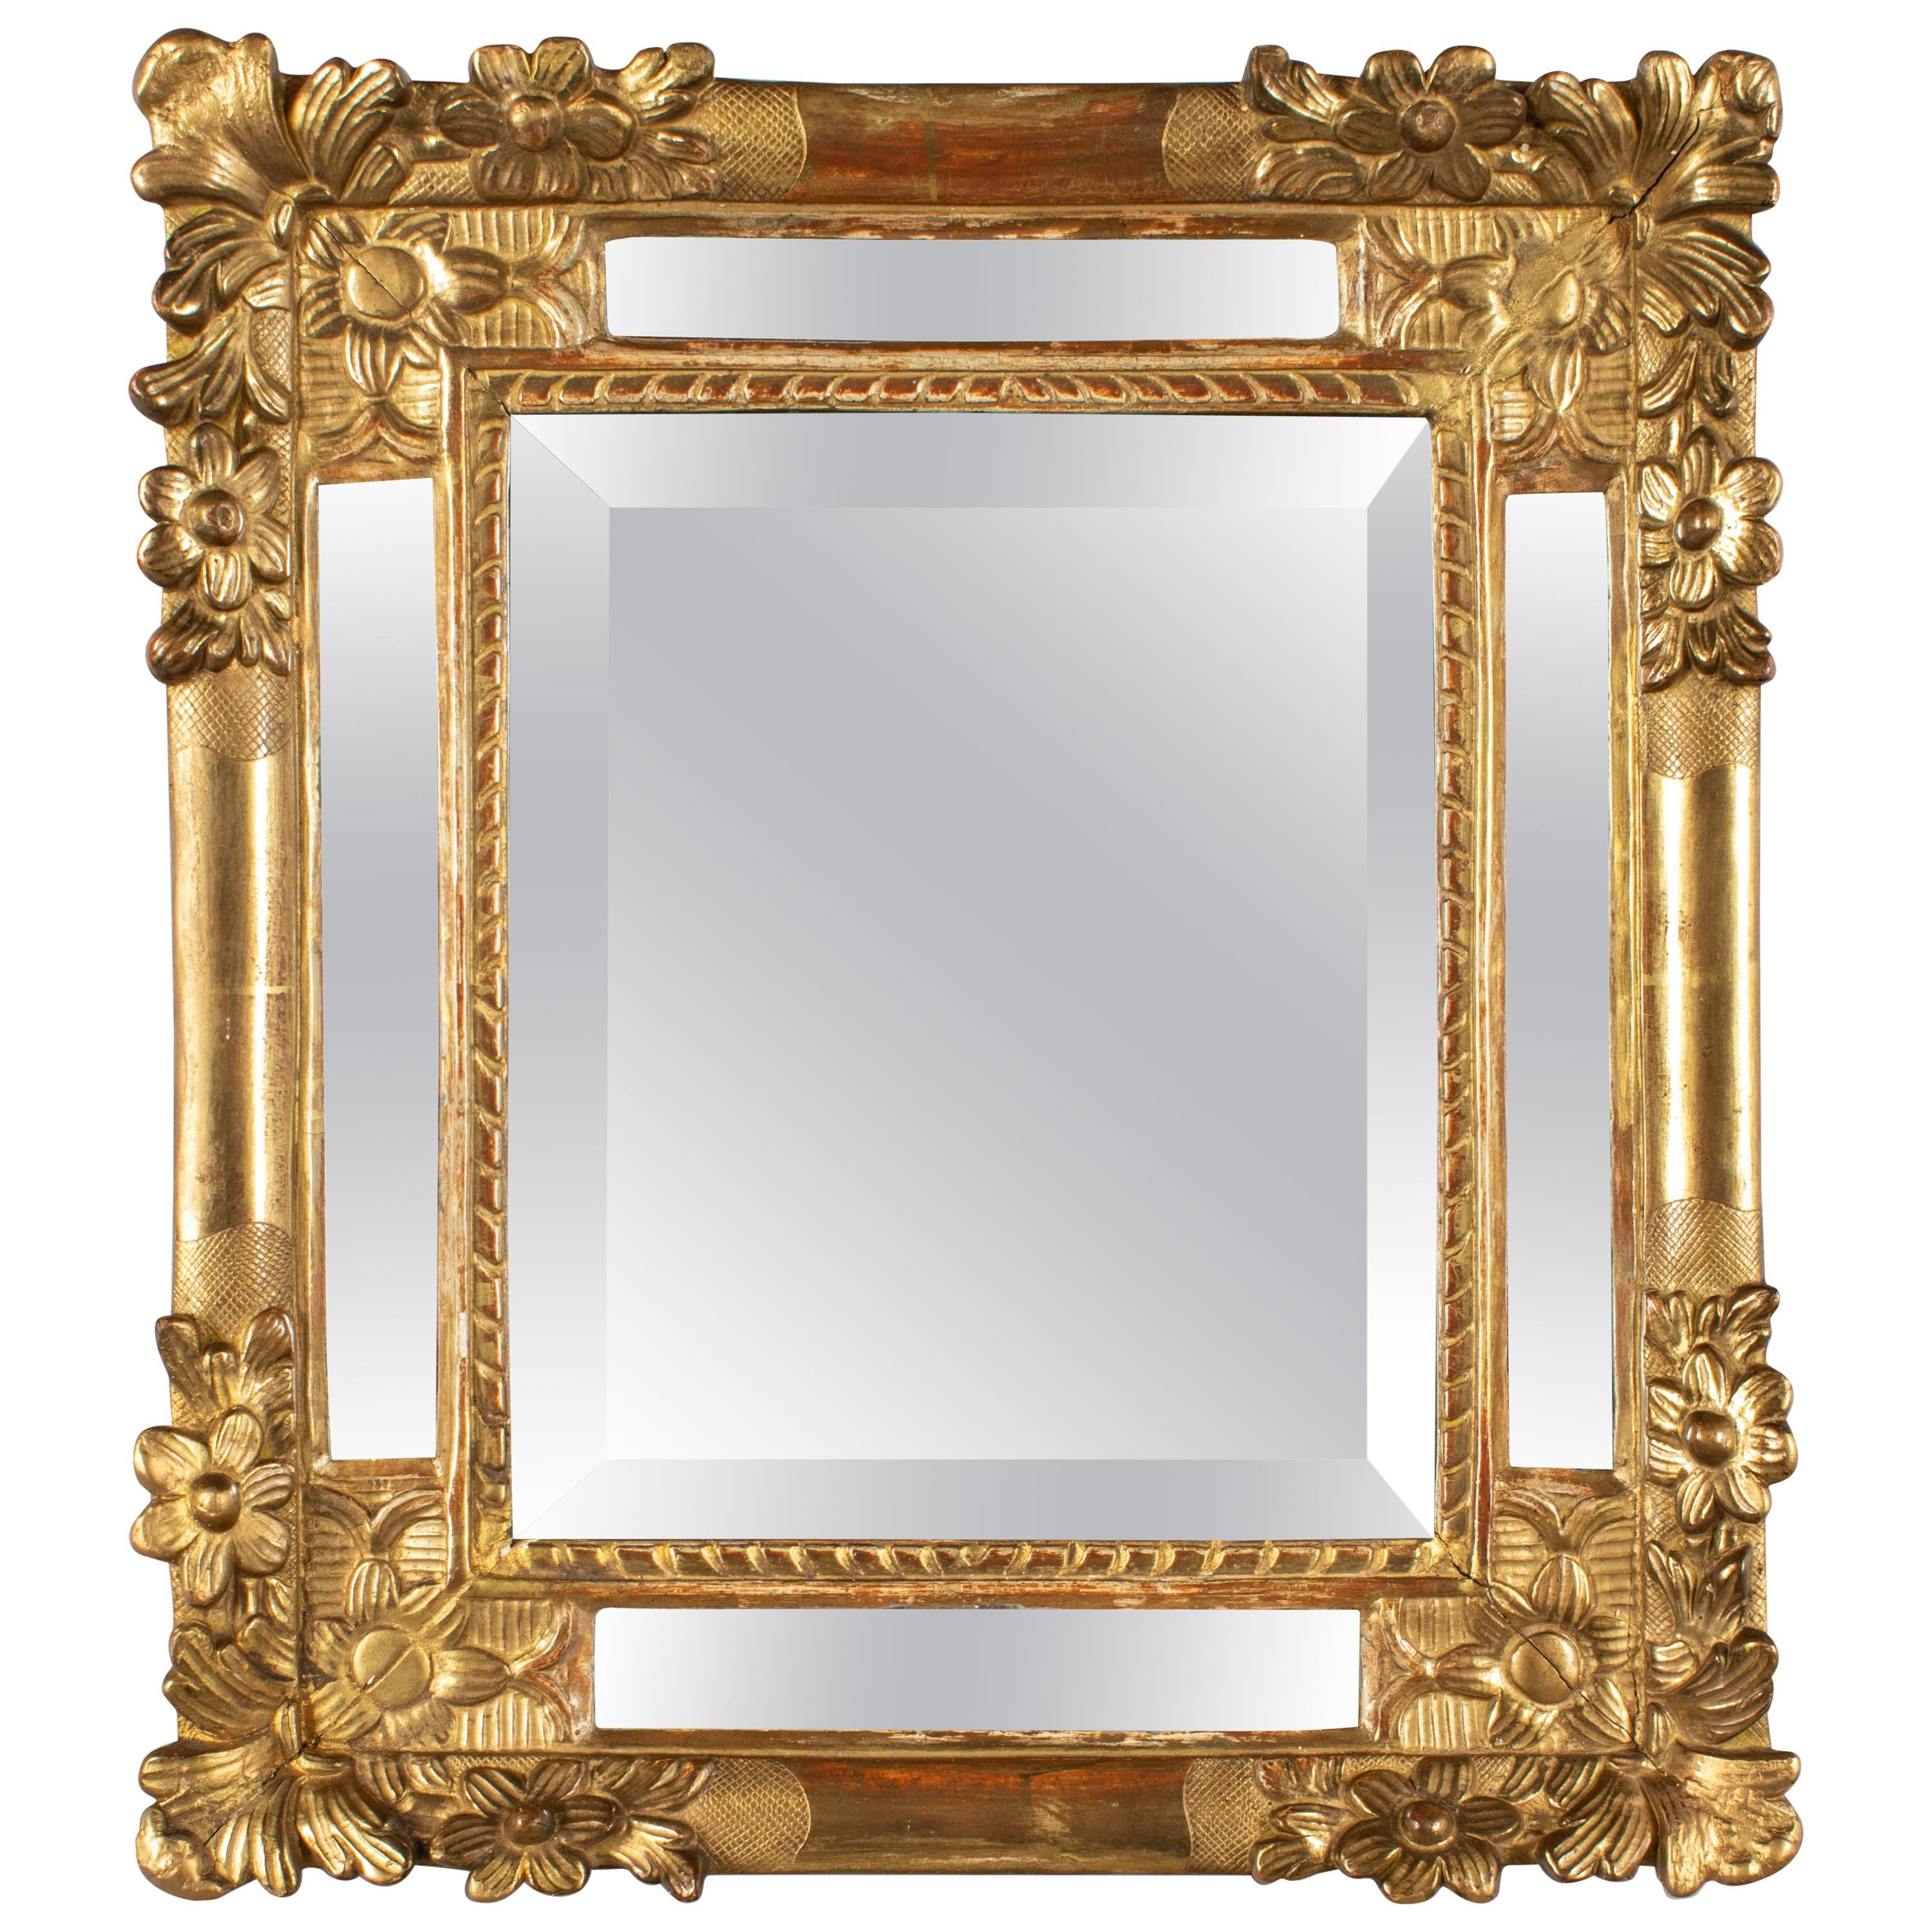 19th Century French Regence Style Carved Giltwood Mirror